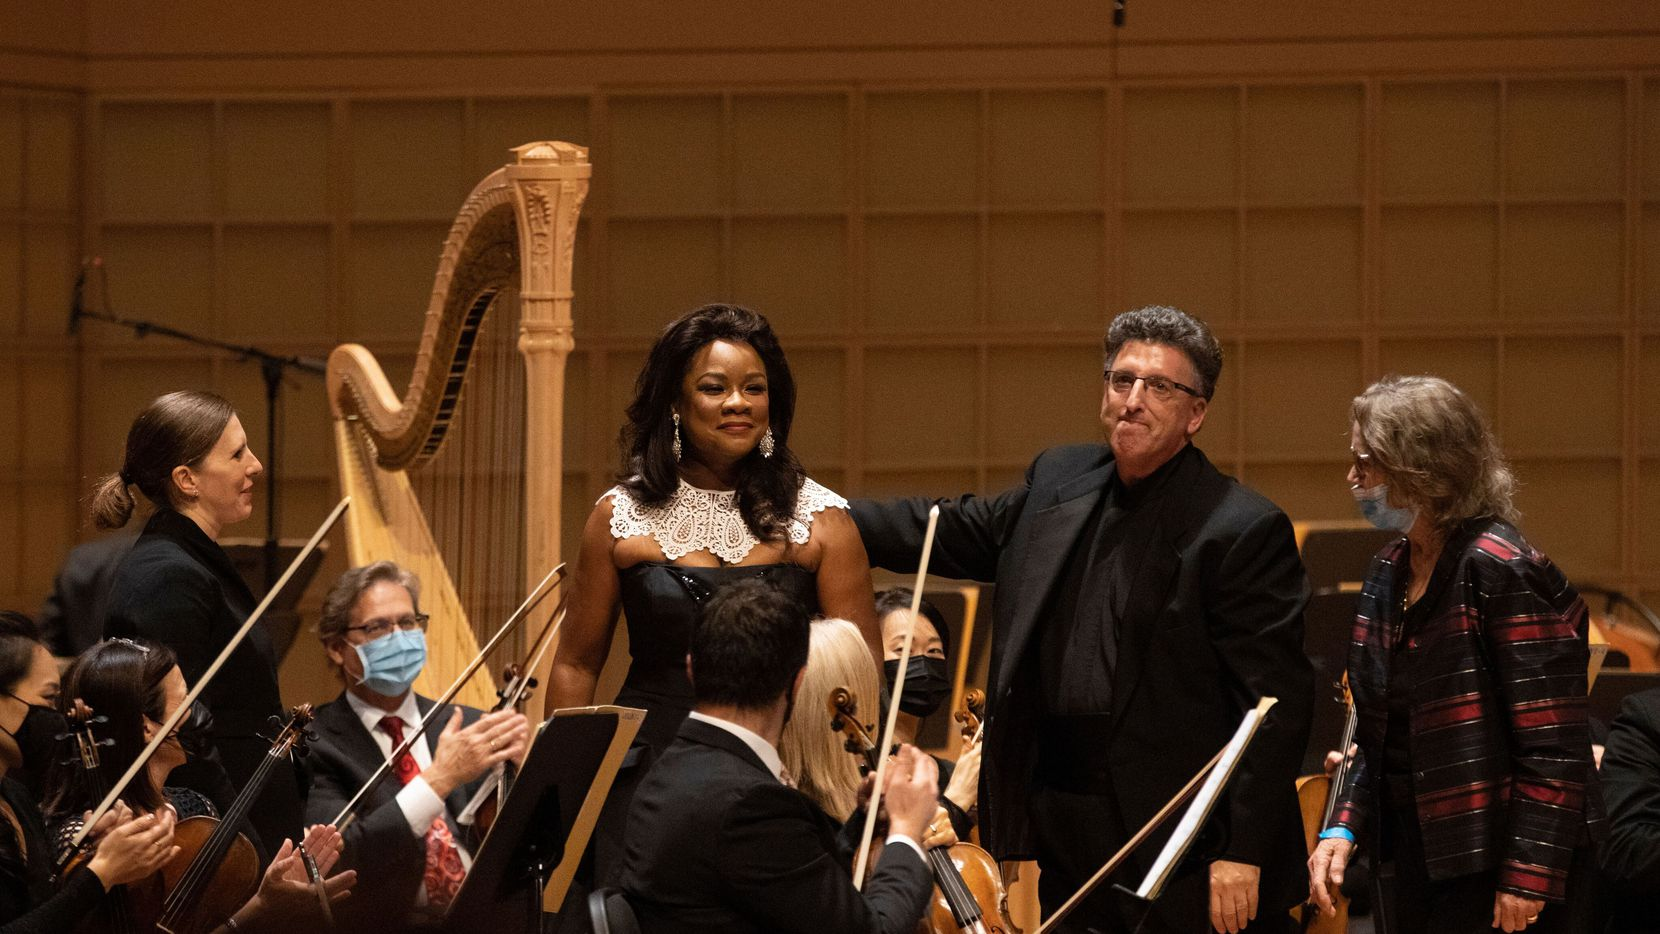 """Conductor Lidiya Yankovskaya, mezzo-soprano Denyce Graves, pianist Jeffrey Biegel and composer Ellen Taaffe Zwilich, after a Dallas Symphony Orchestra world premiere of Zwilich's """"Remembering Ruth Bader Ginsburg,"""" at the Meyerson Symphony Center in Dallas, on Oct. 7, 2021."""